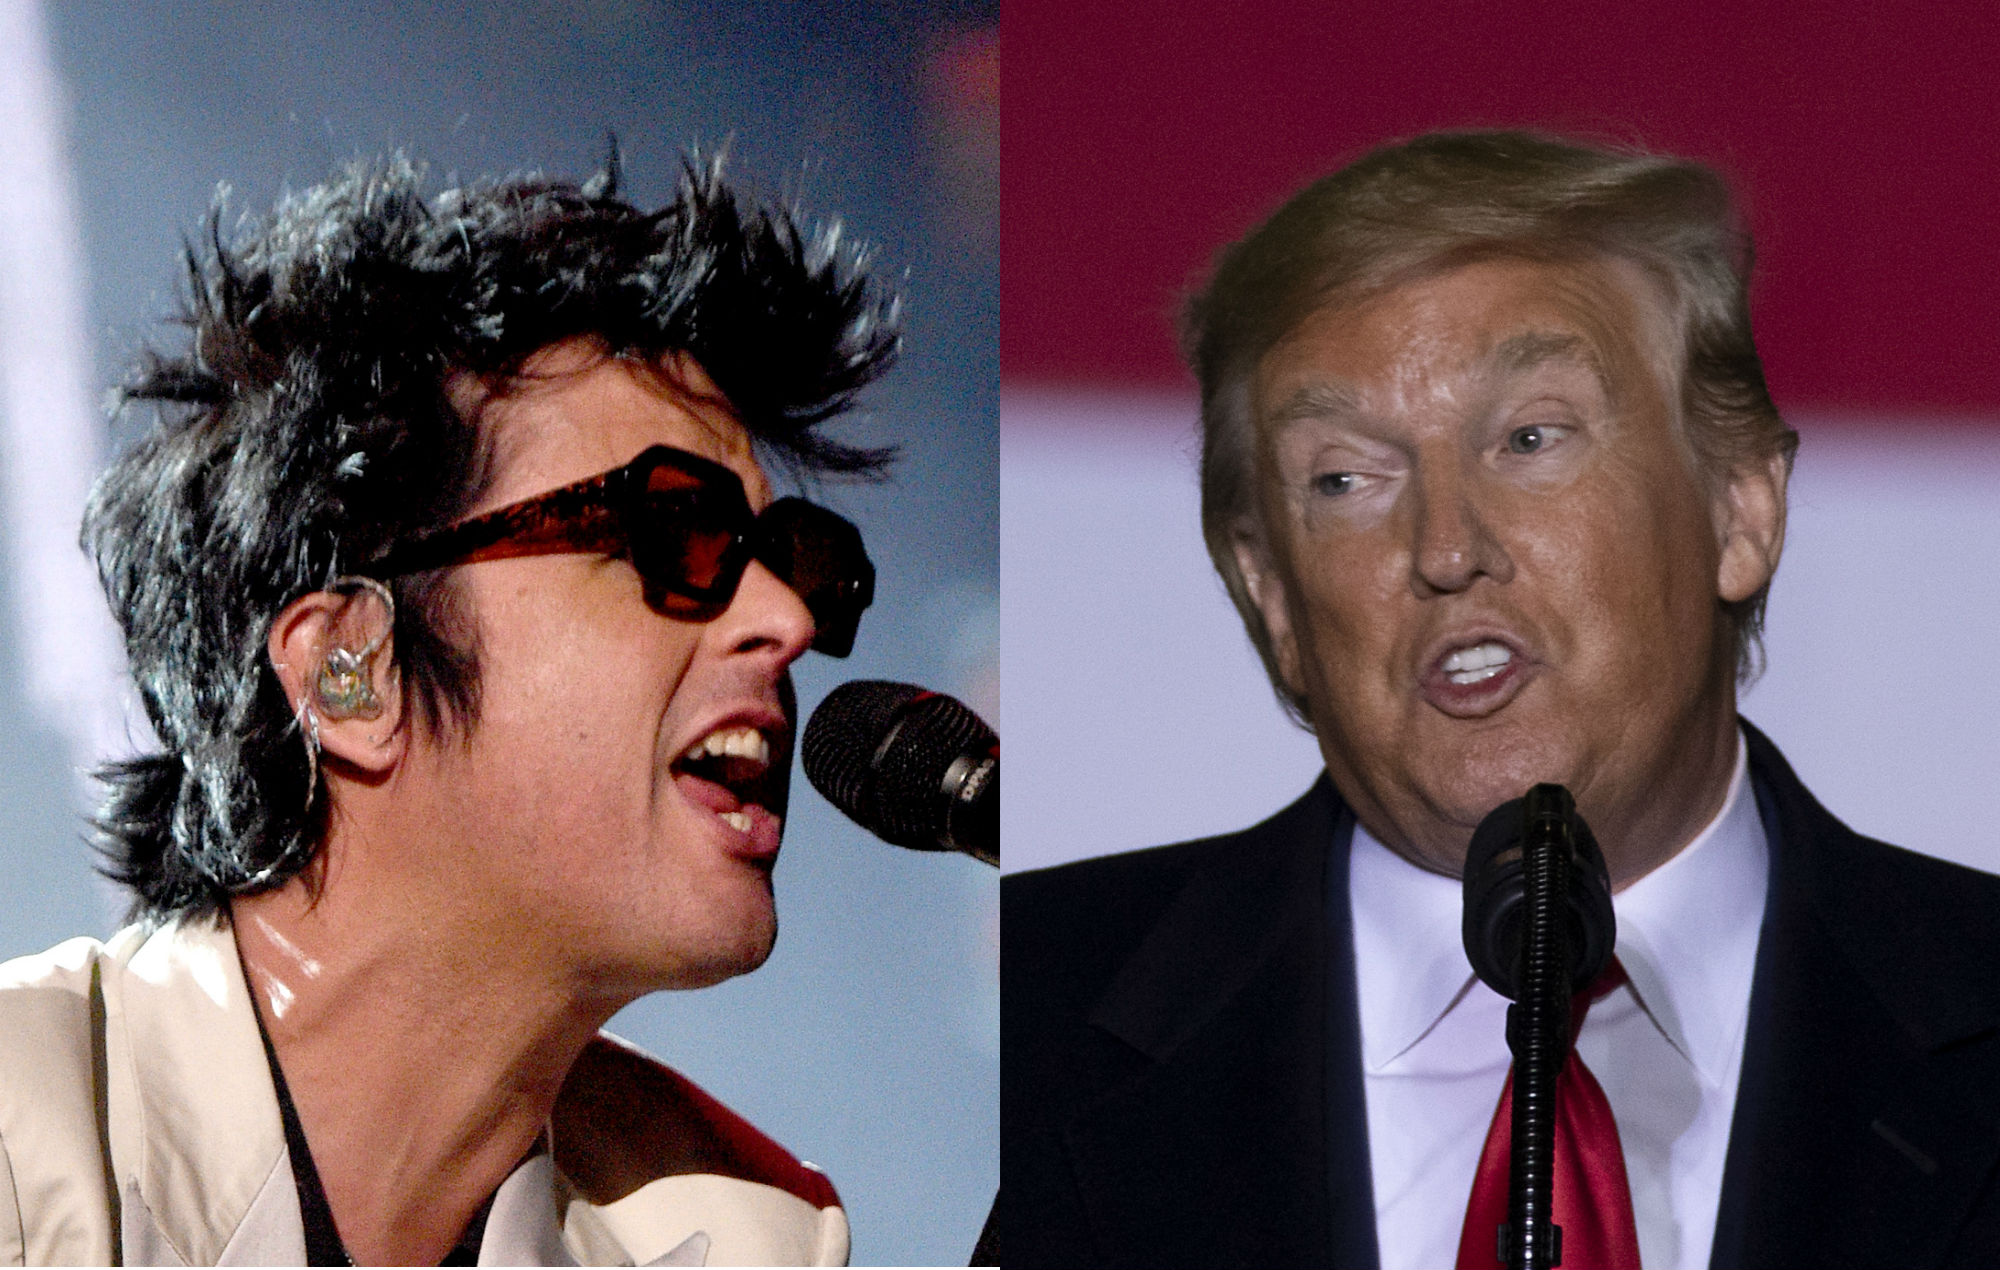 """Green Day's Billie Joe Armstrong calls out US President: """"Trump gives me diarrhoea"""" - EpicNews"""